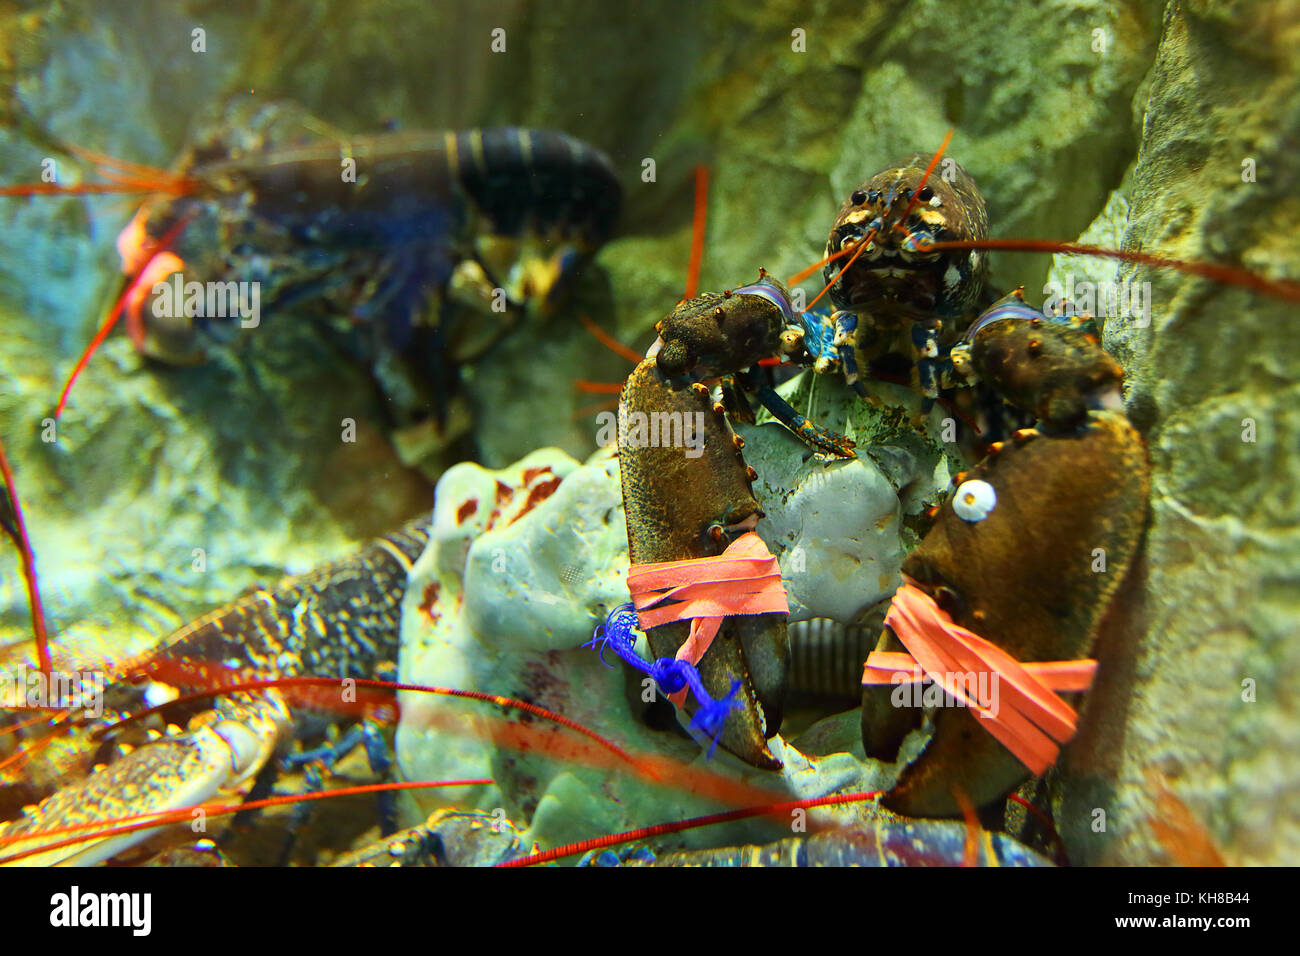 Lobsters in a fish pond. - Stock Image